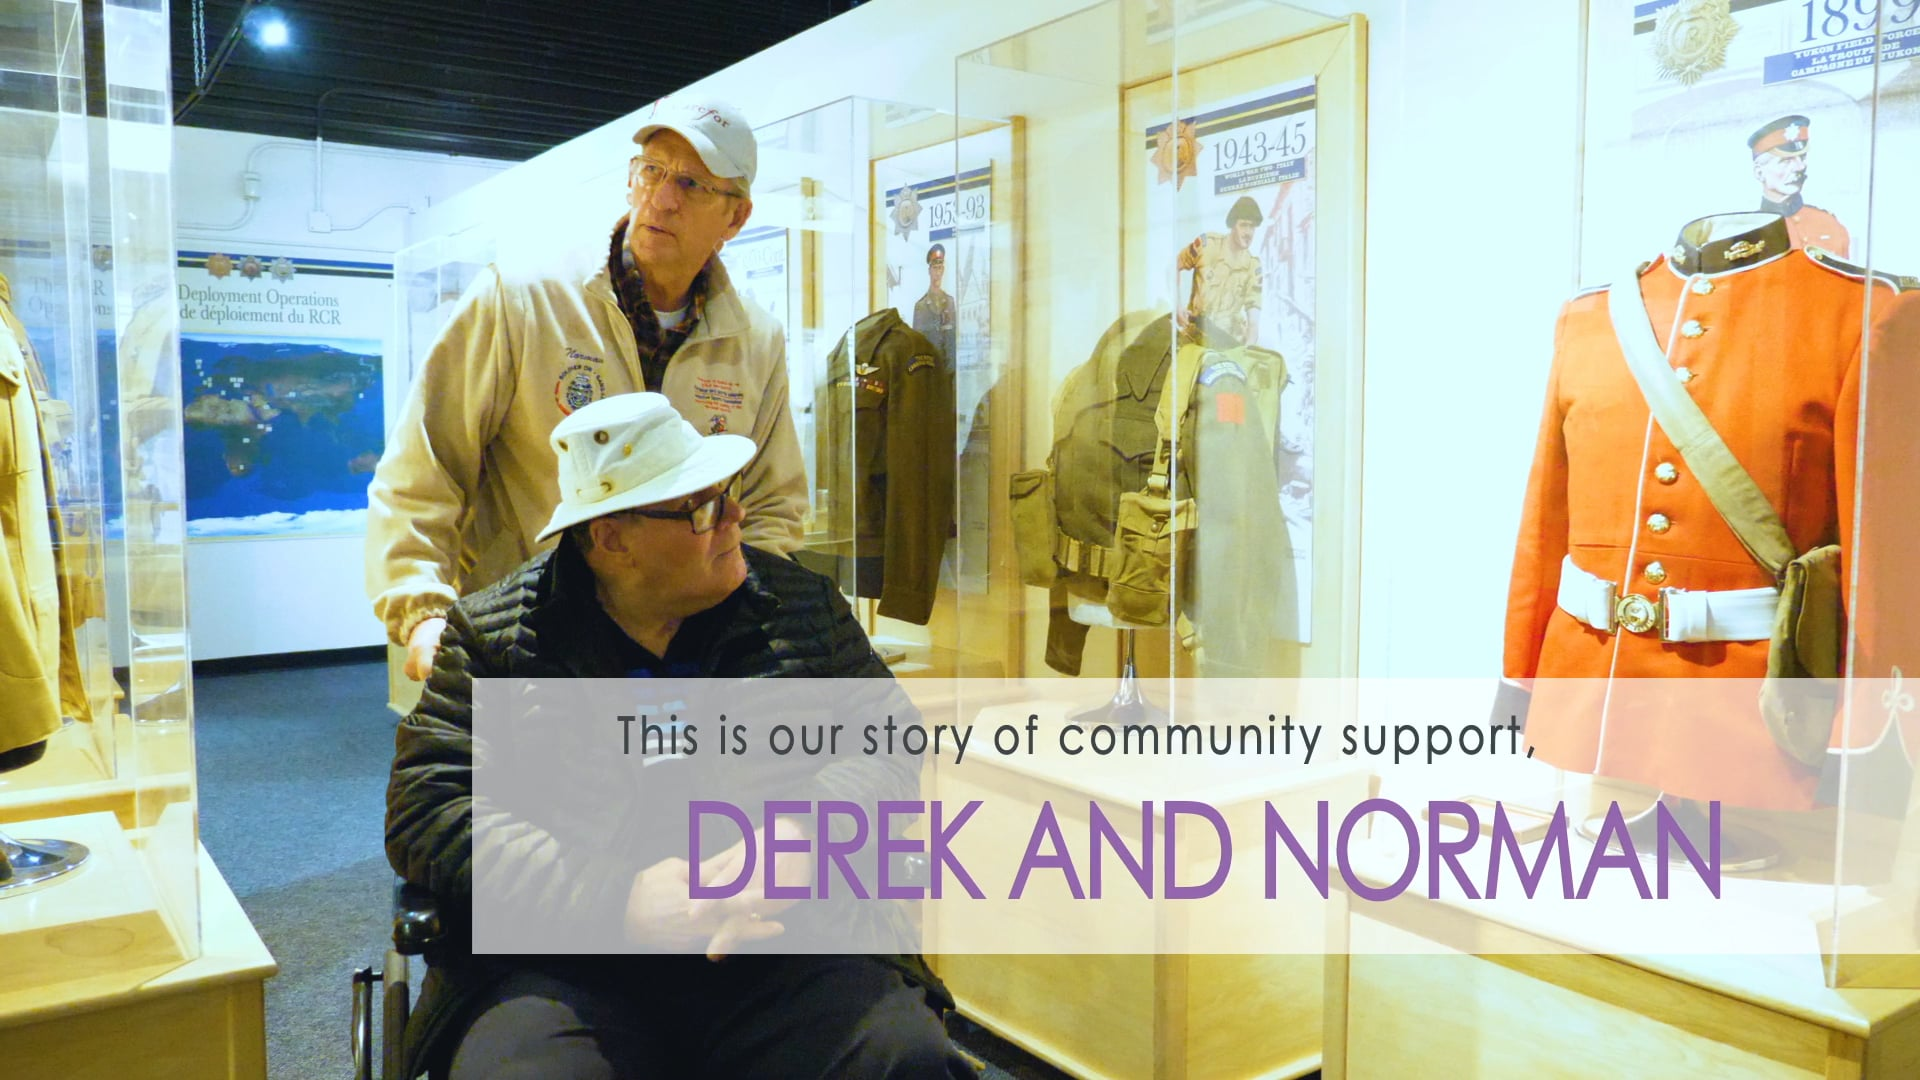 Norman and Derek's Story of Community Support